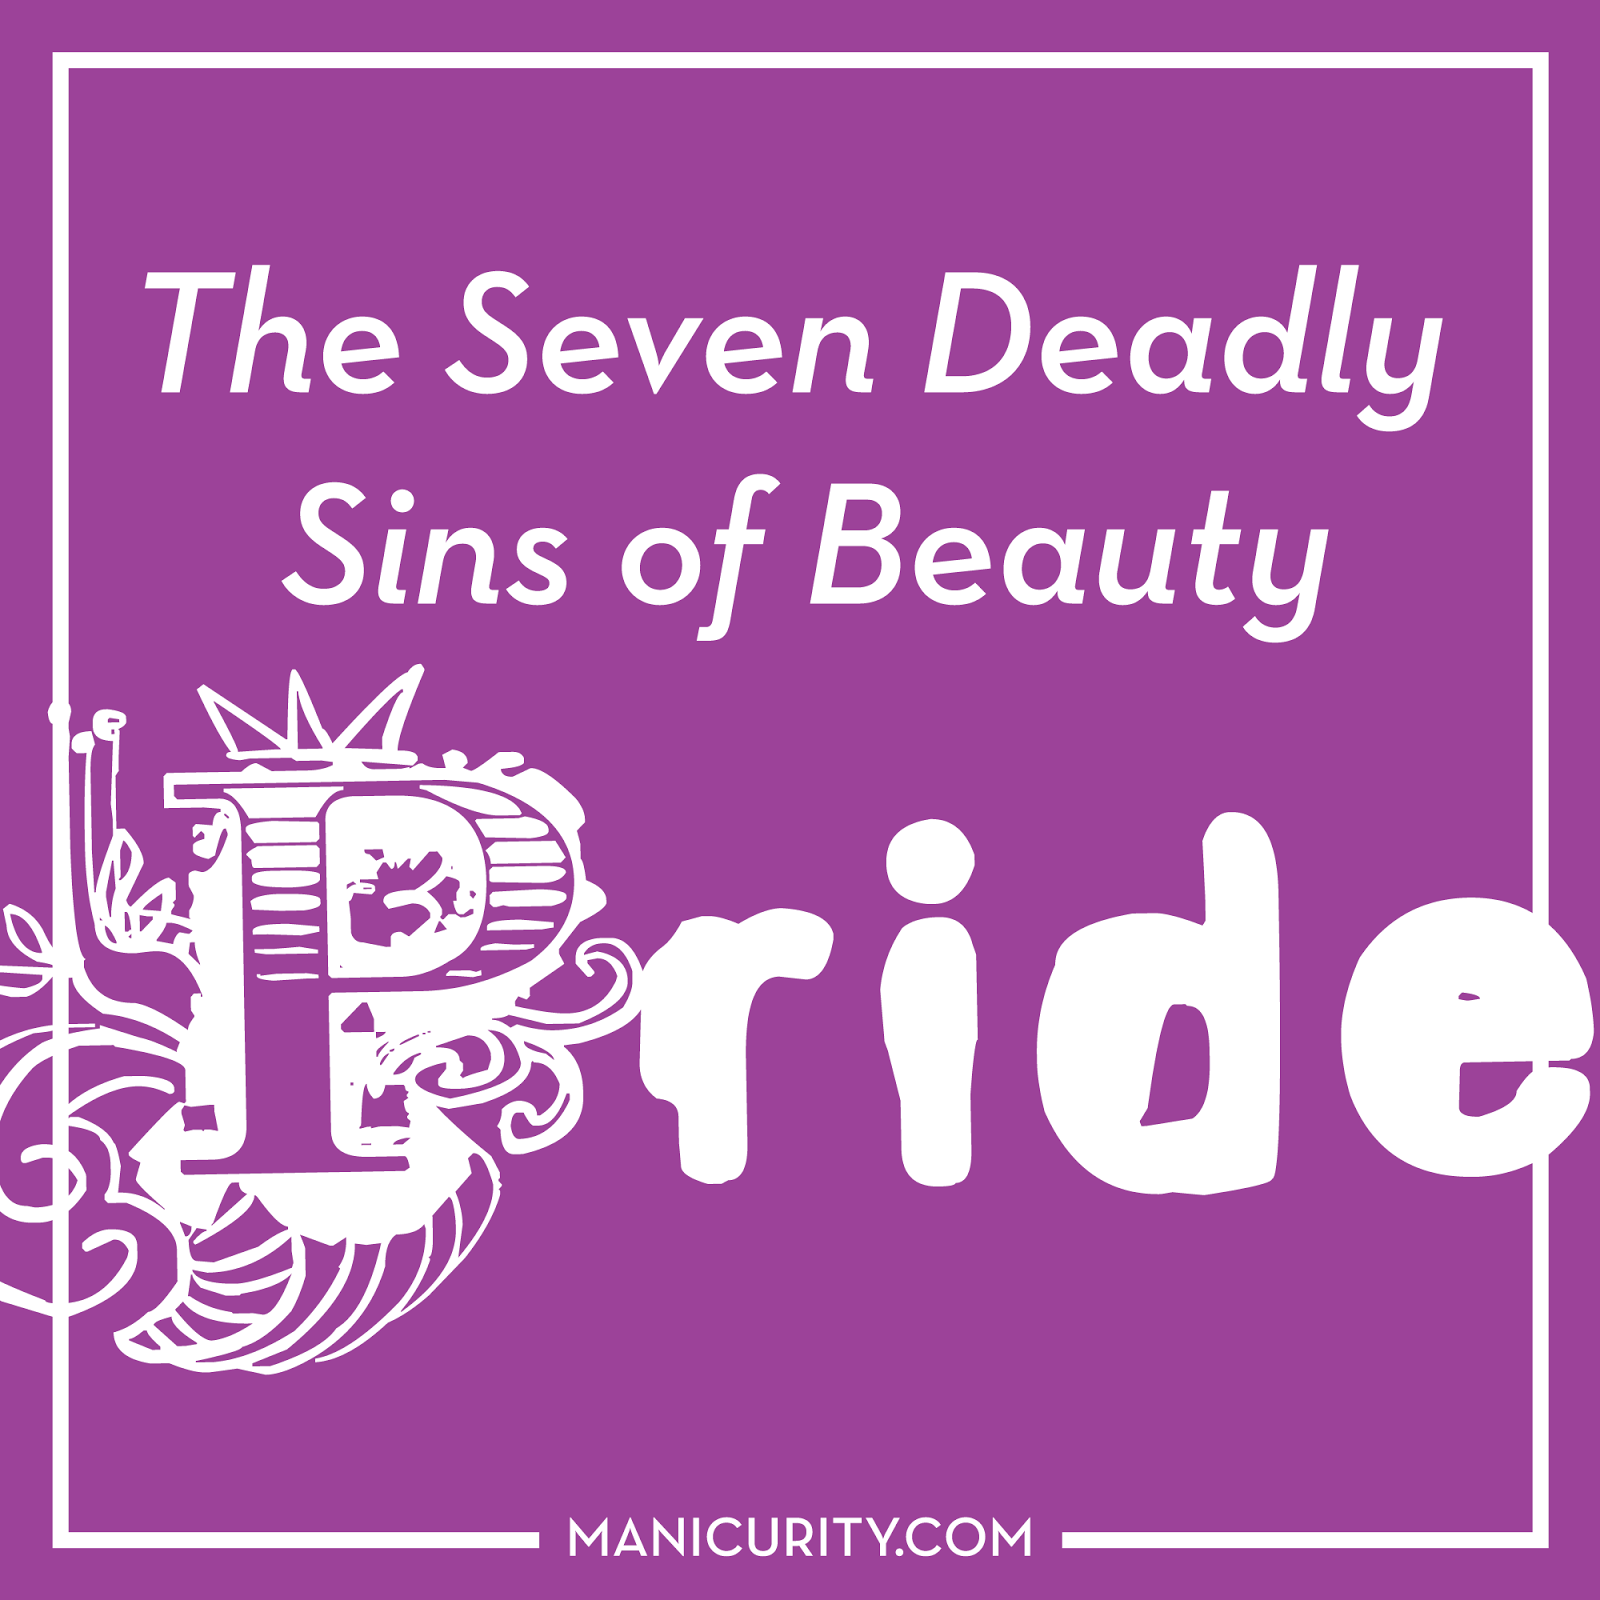 the mortal sin of pride essay Sin is the worst evil a person can commit in one's life sin can broadly fall into the following categories or what are called the seven deadly sins: pride, gluttony, greed, lust, sloth, wrath, and envy.